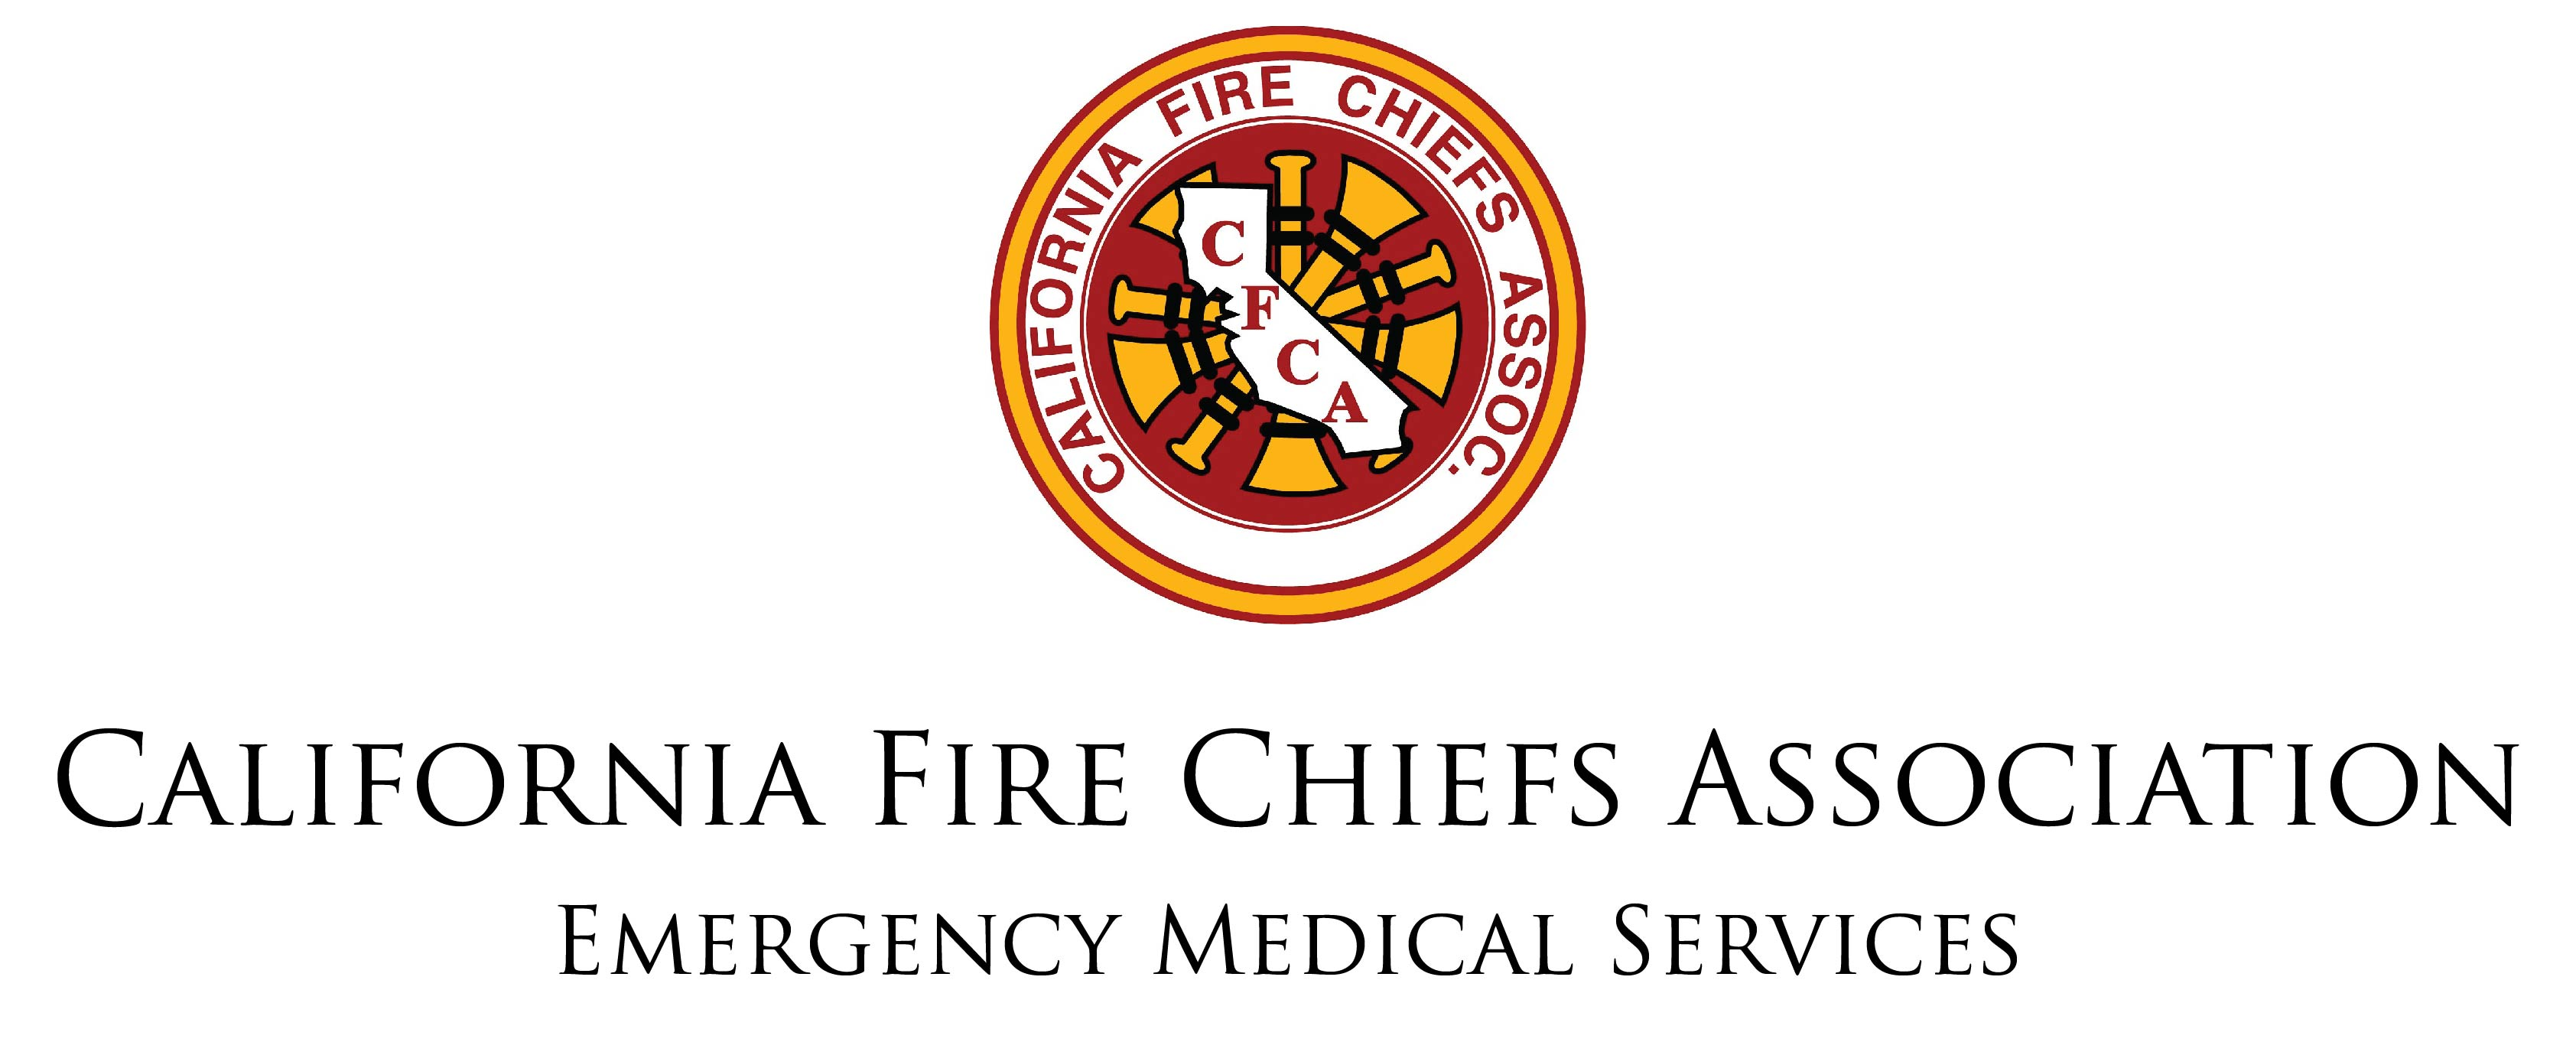 California Fire Chiefs Association - Emergency Medical Services